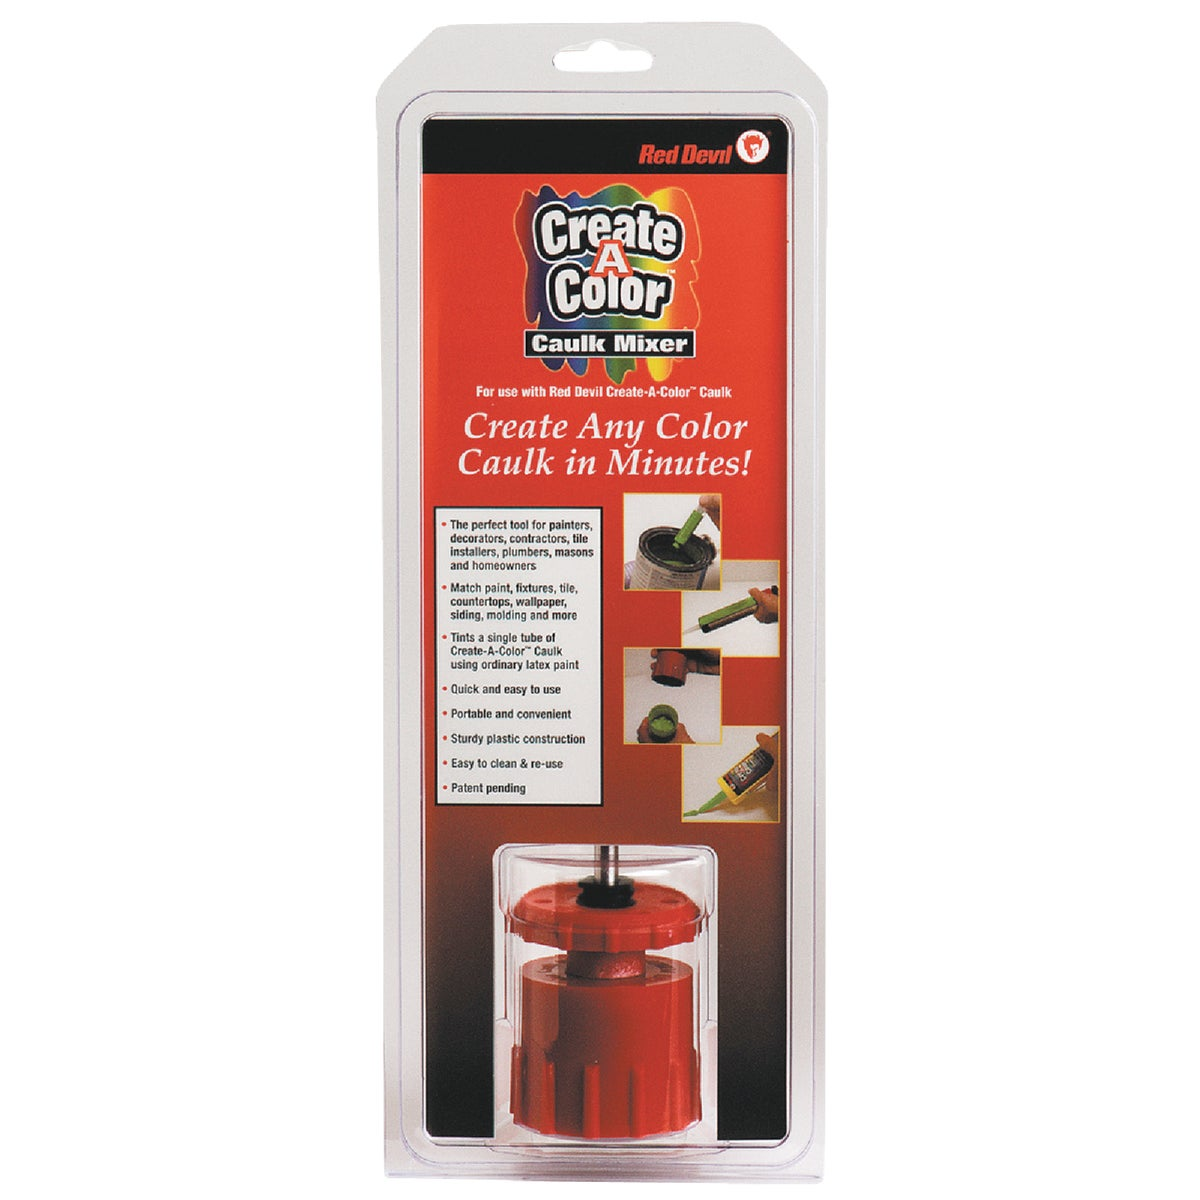 STANDARD CAULK MIXER - 4070 by Red Devil